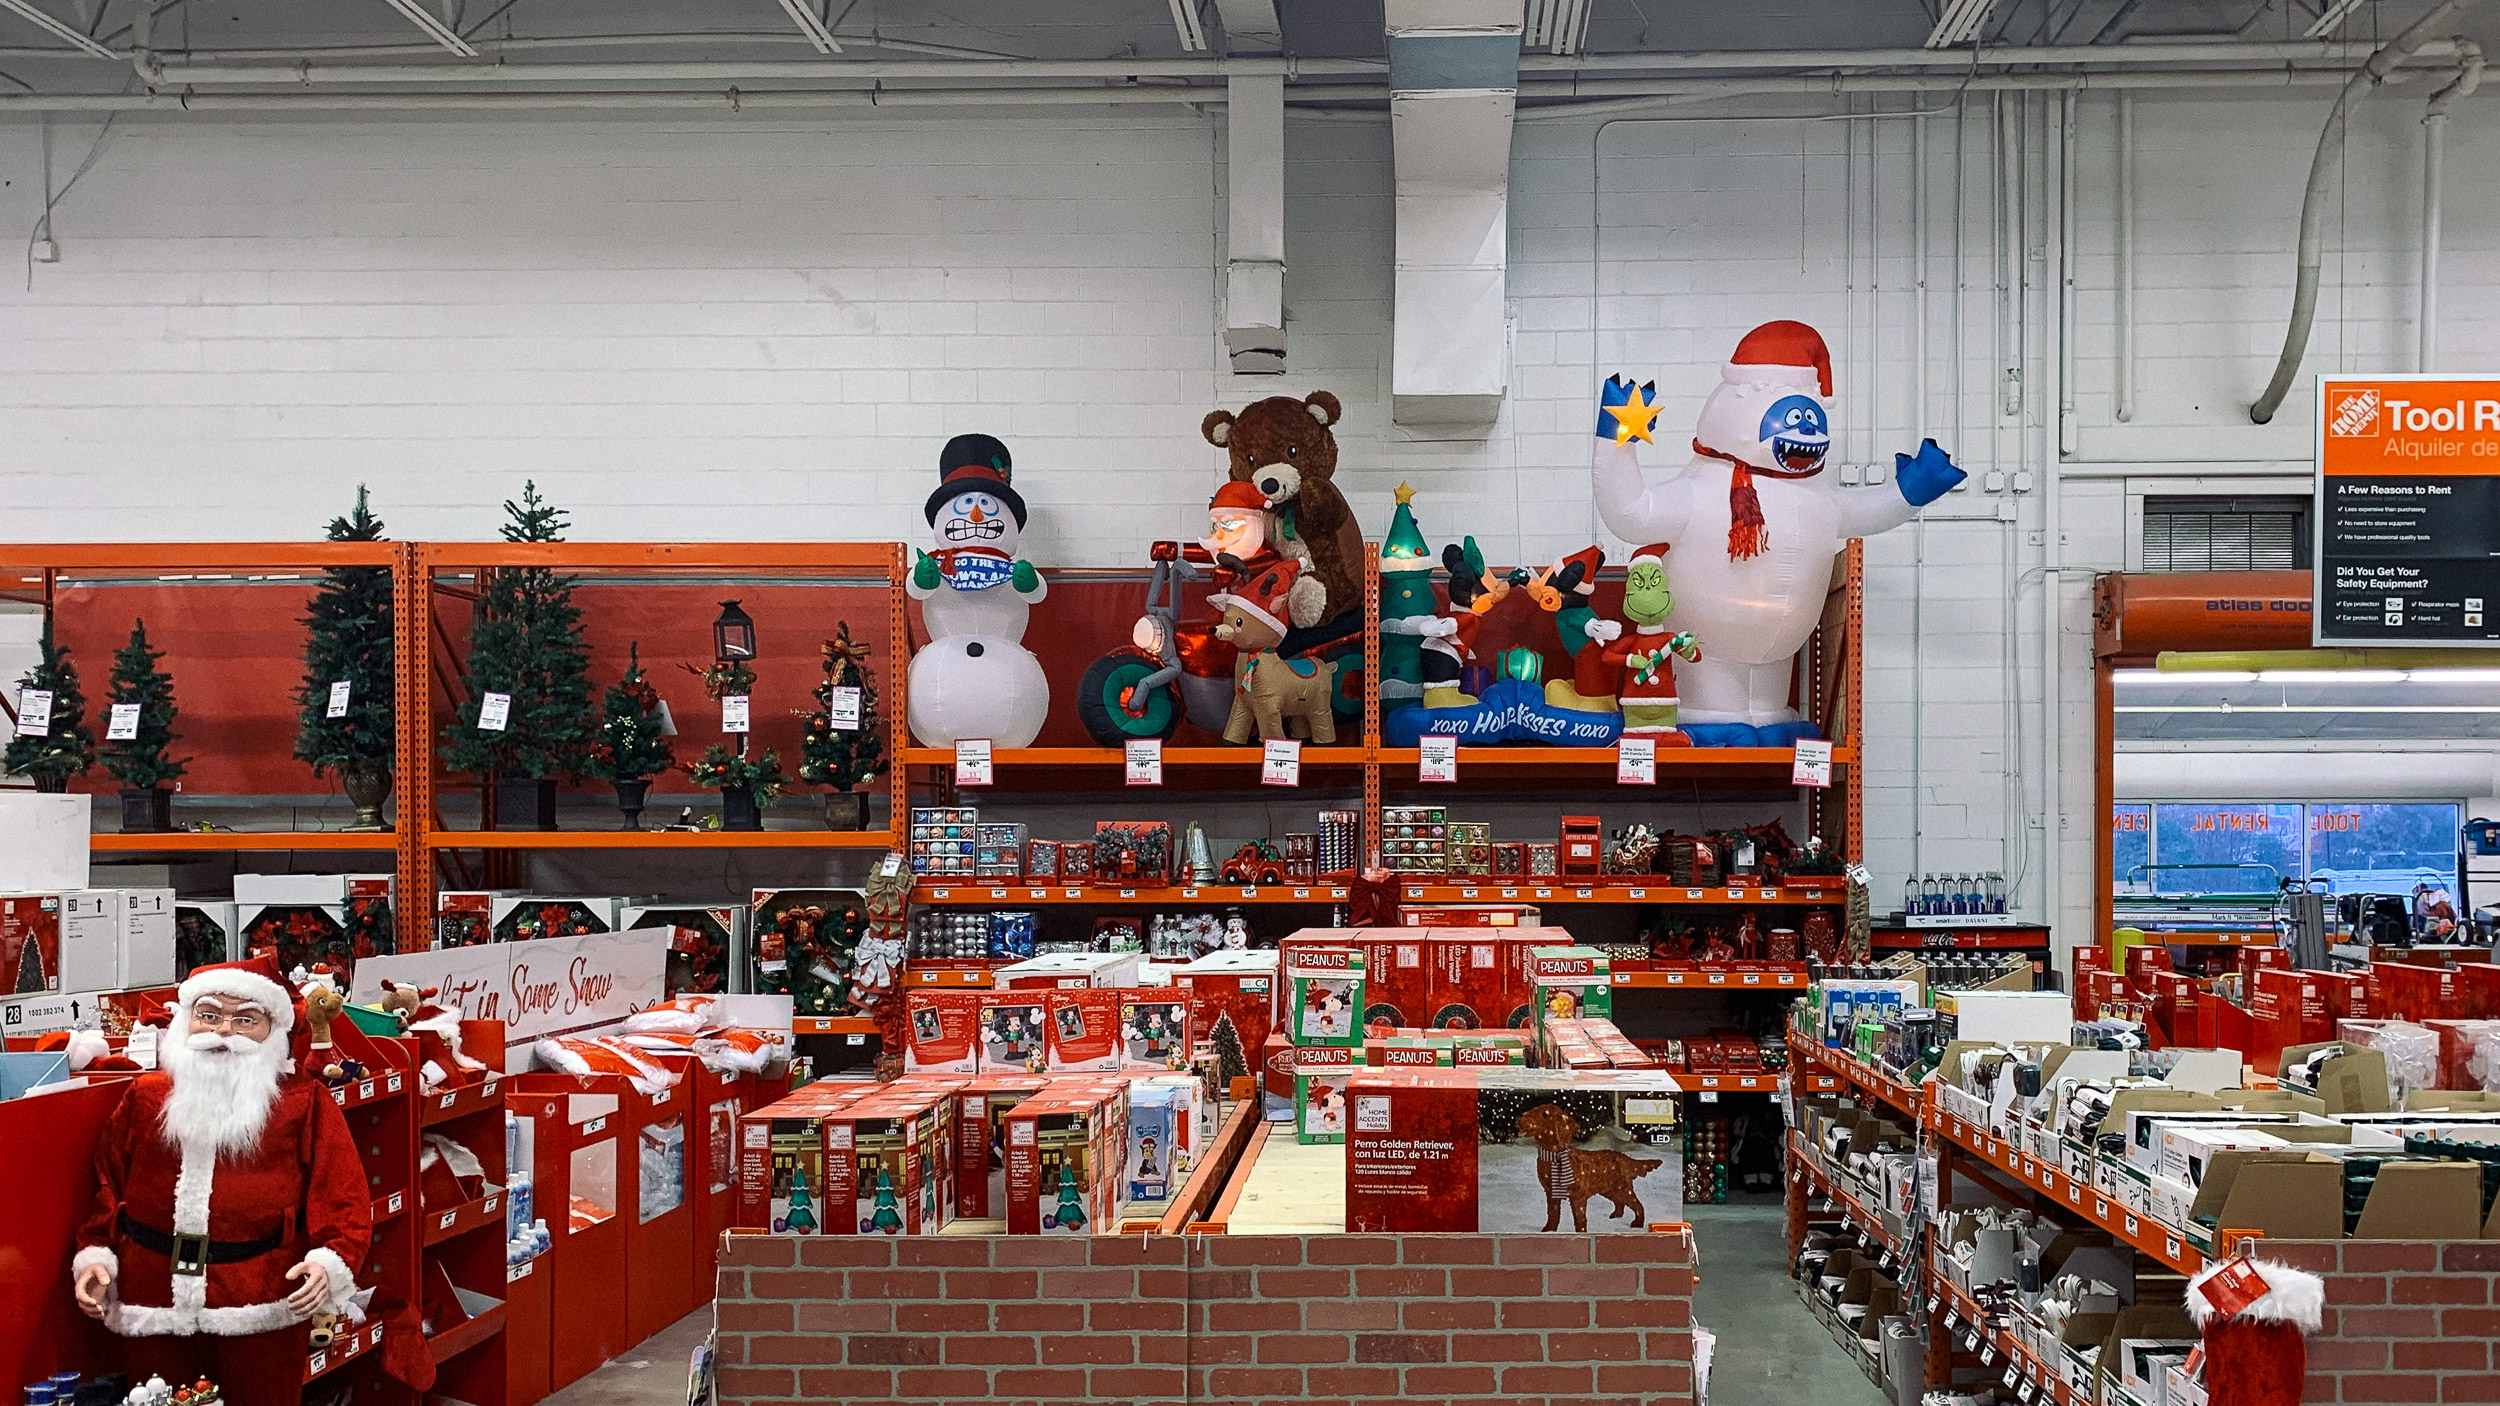 Home Depot holiday decorations